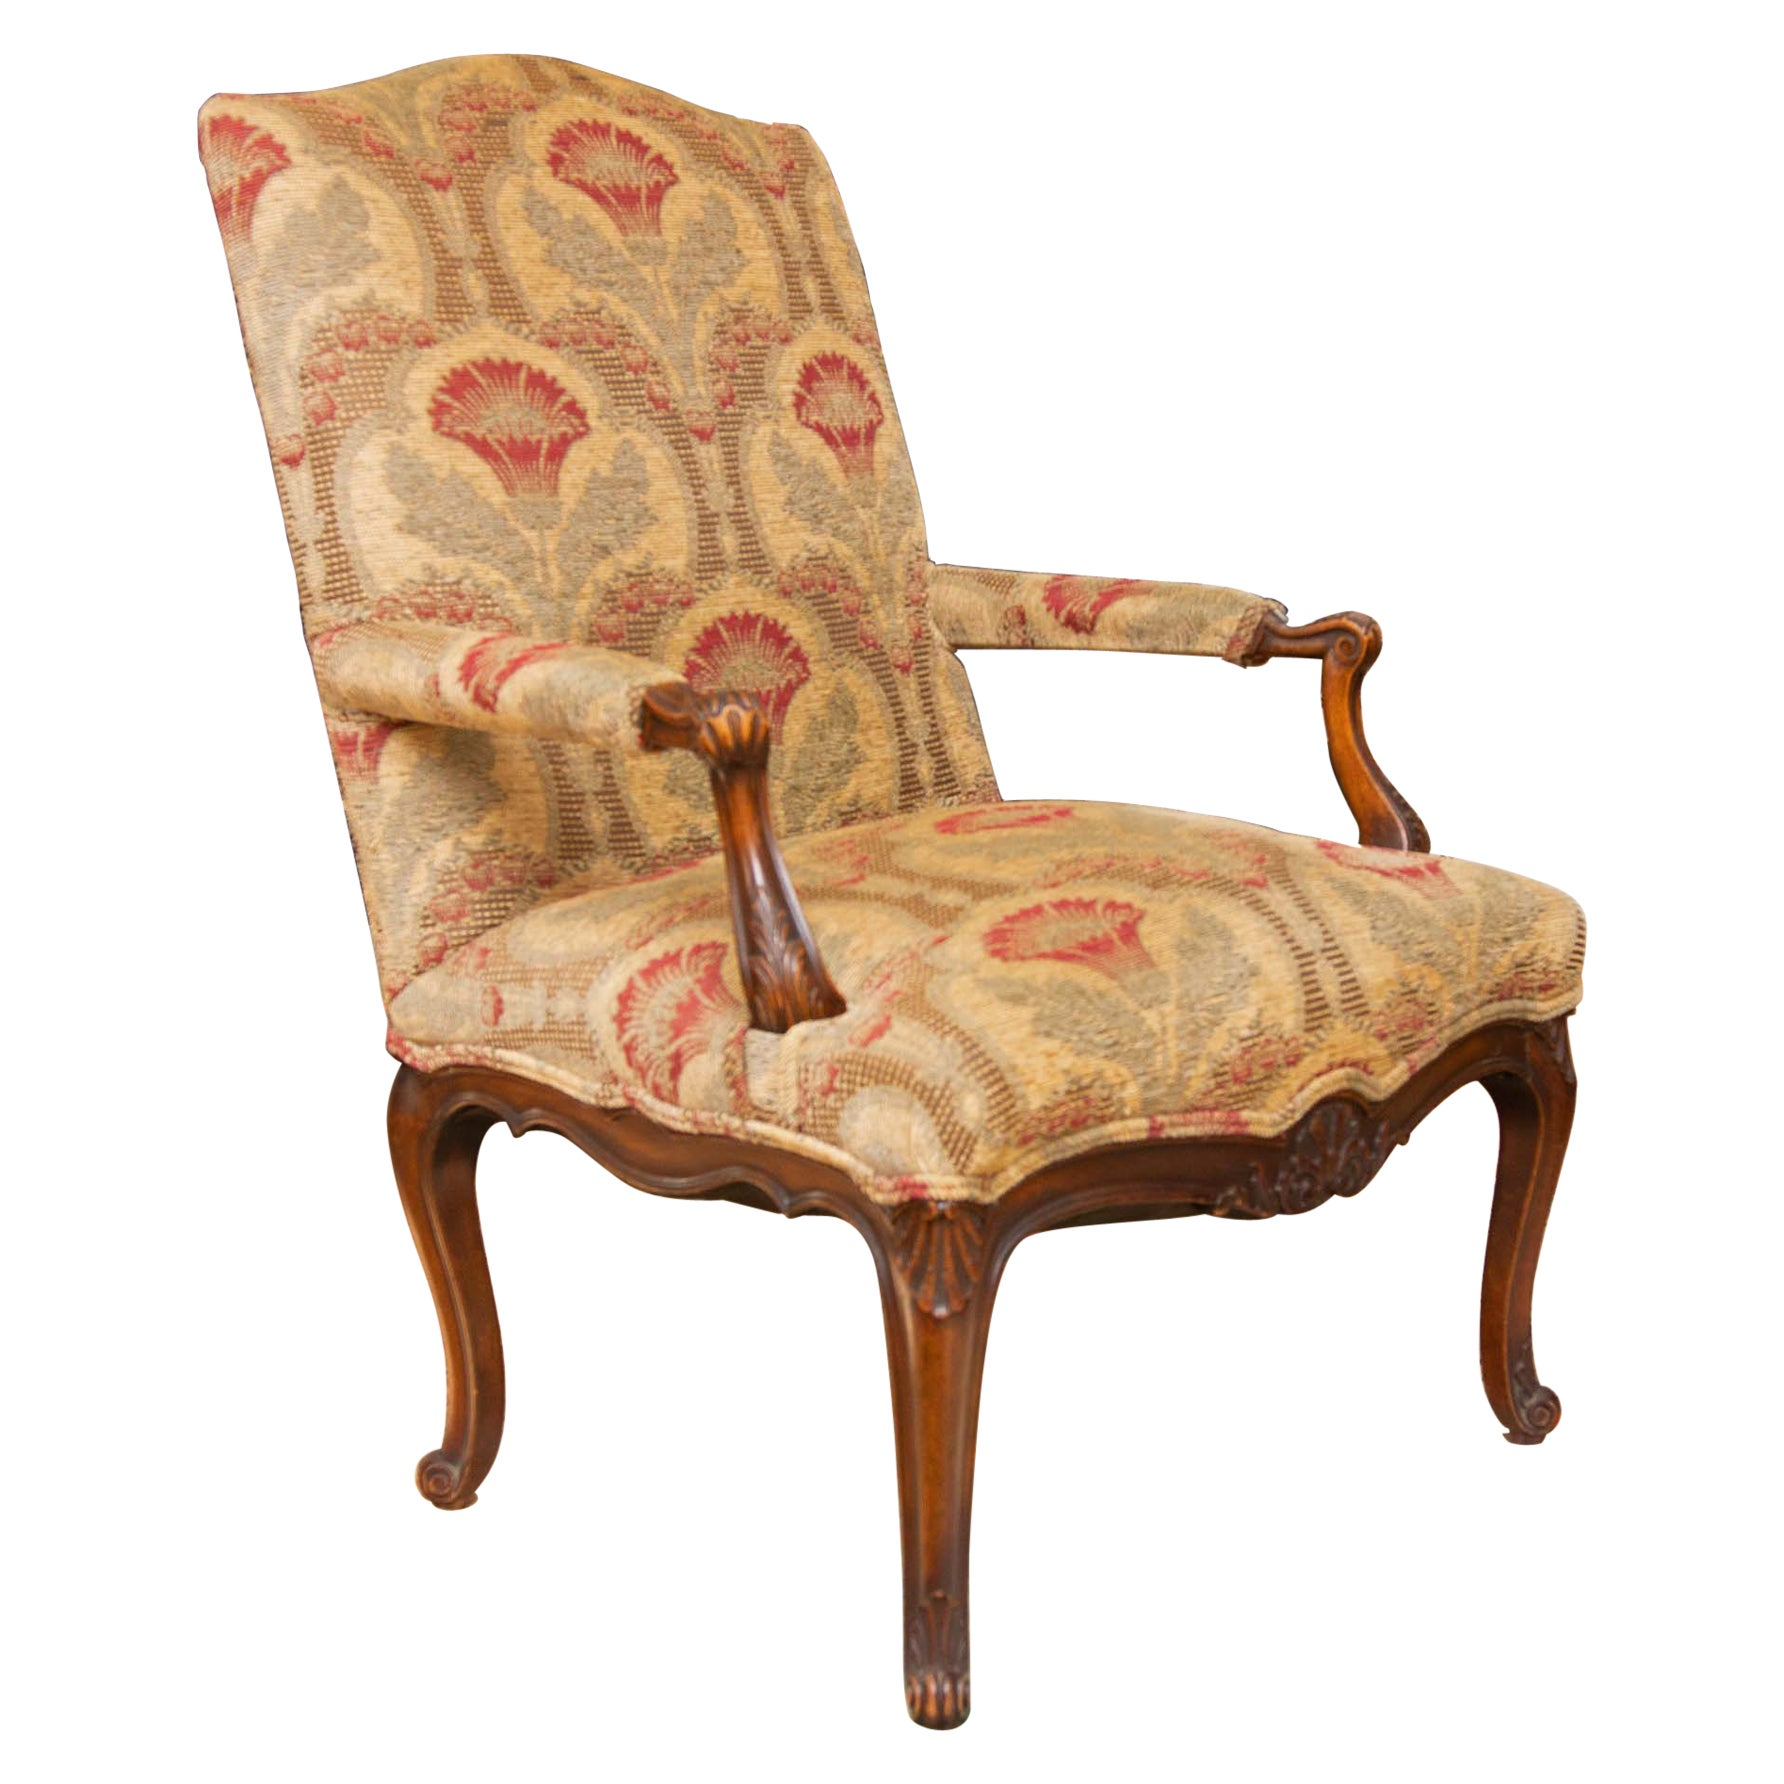 Louis XI Style French Fauteuil or Armchair